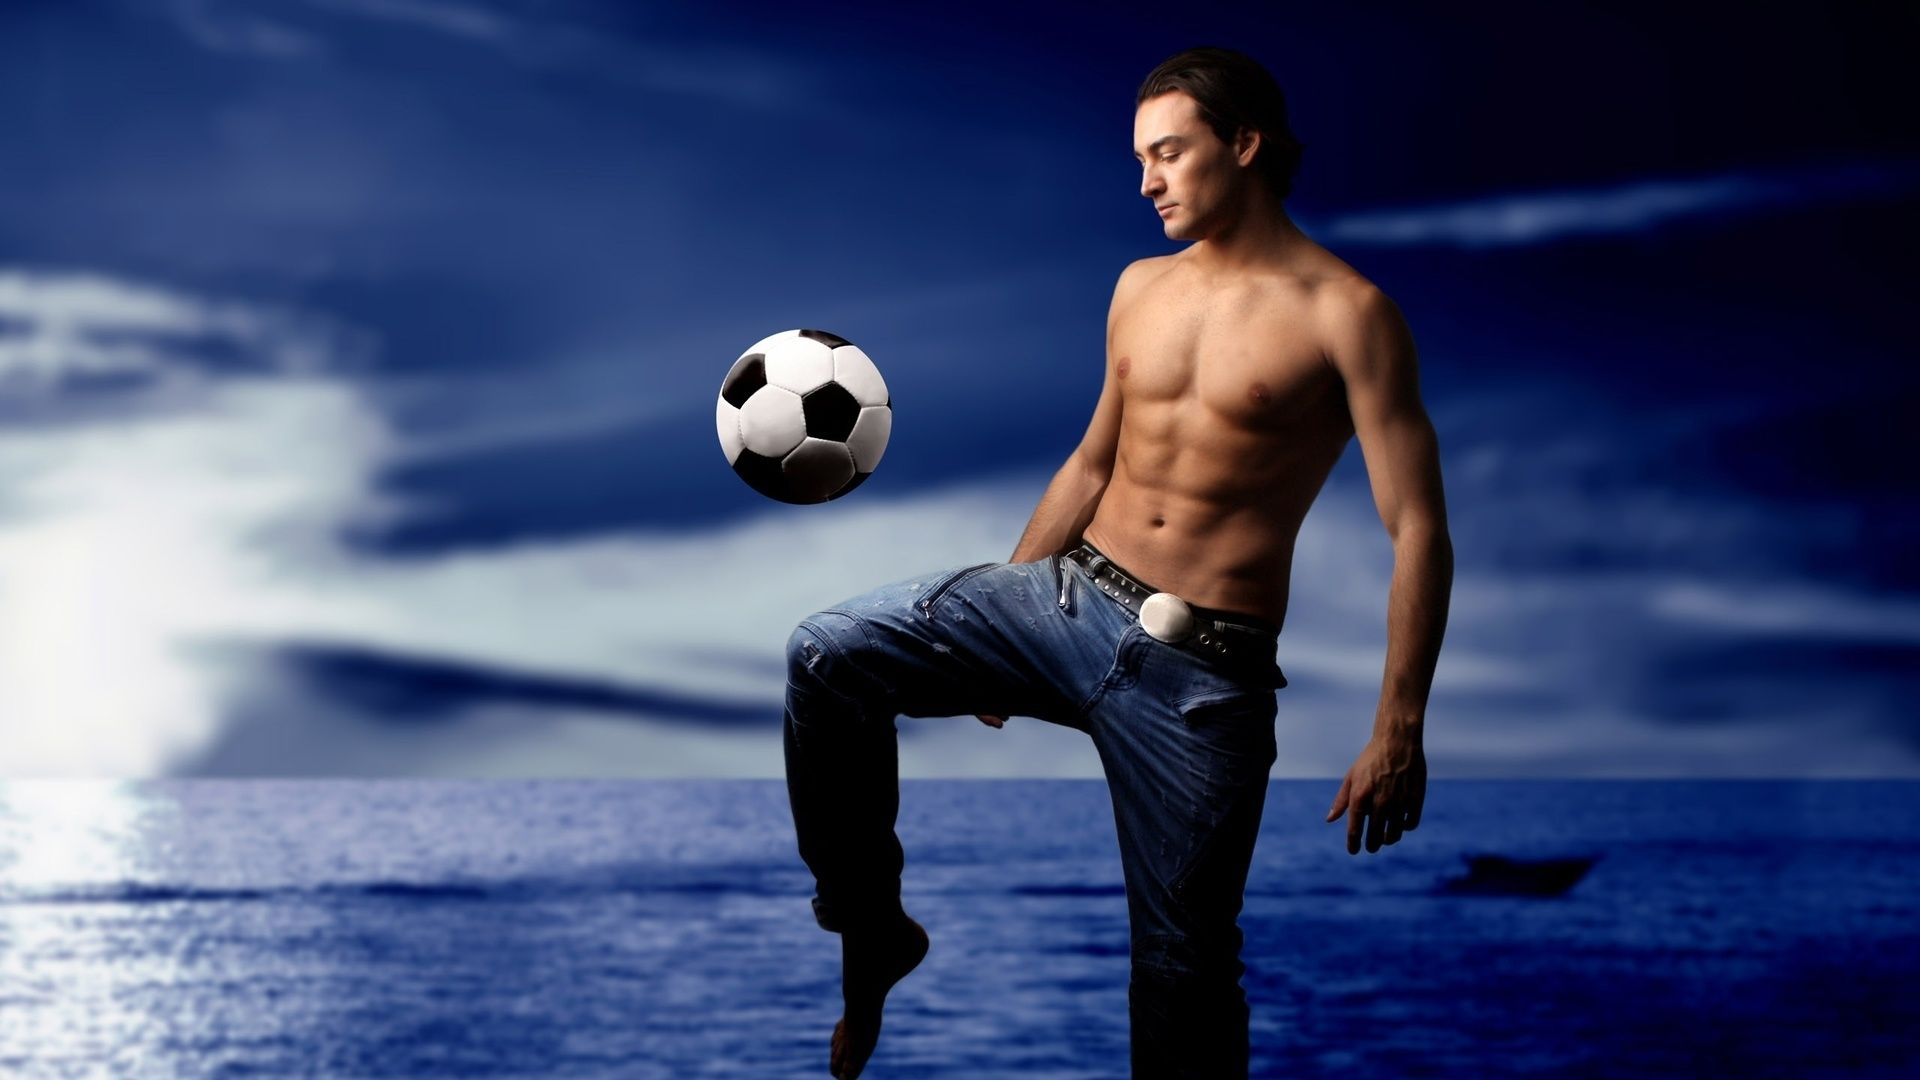 Beautiful Photos Of Players With The Ball